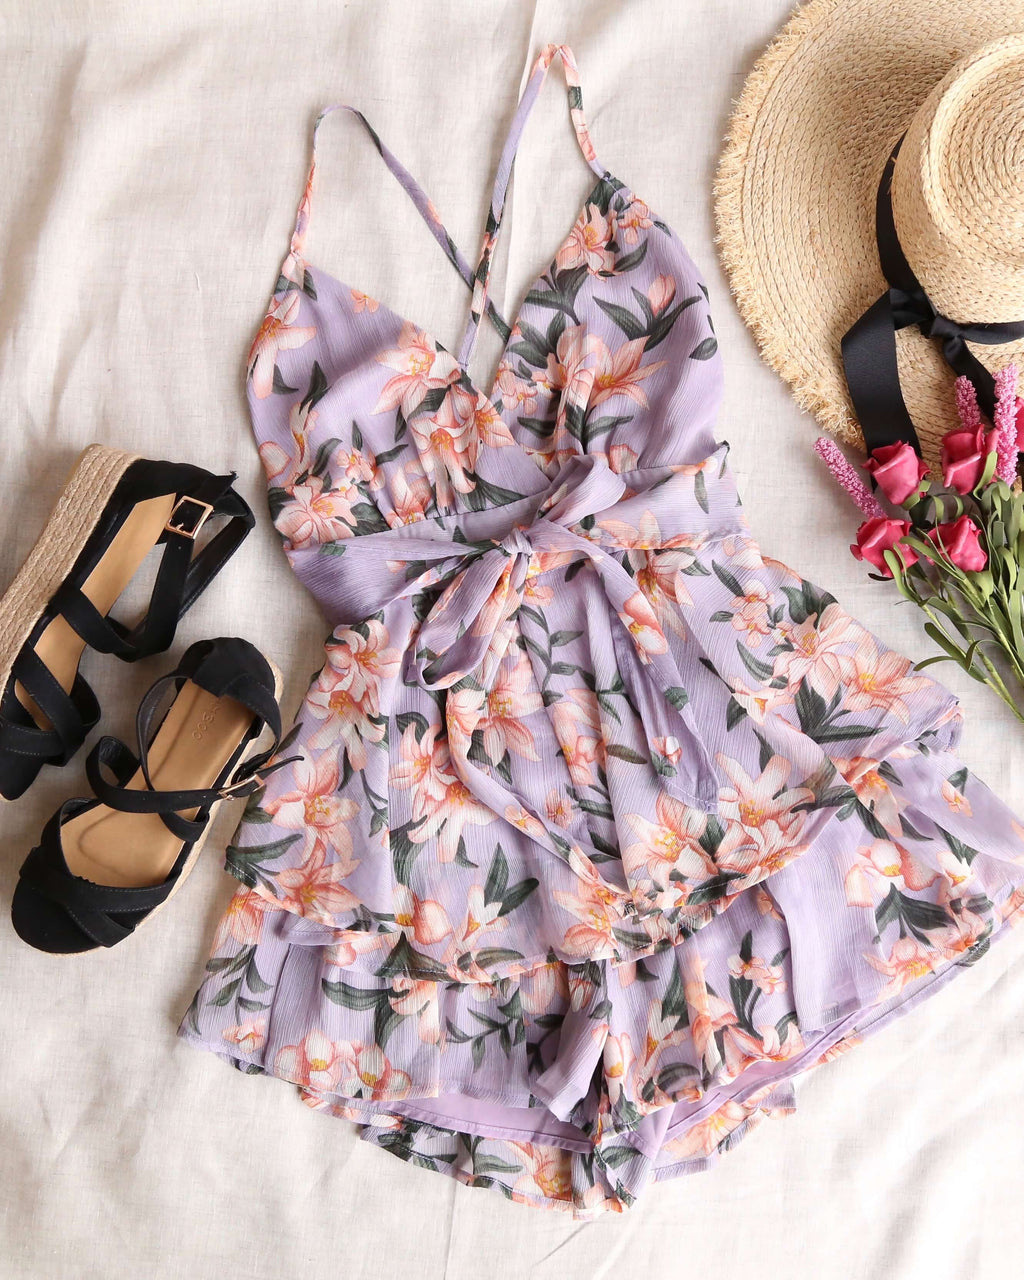 Ruffled Floral Chiffon Romper in Purple Multi